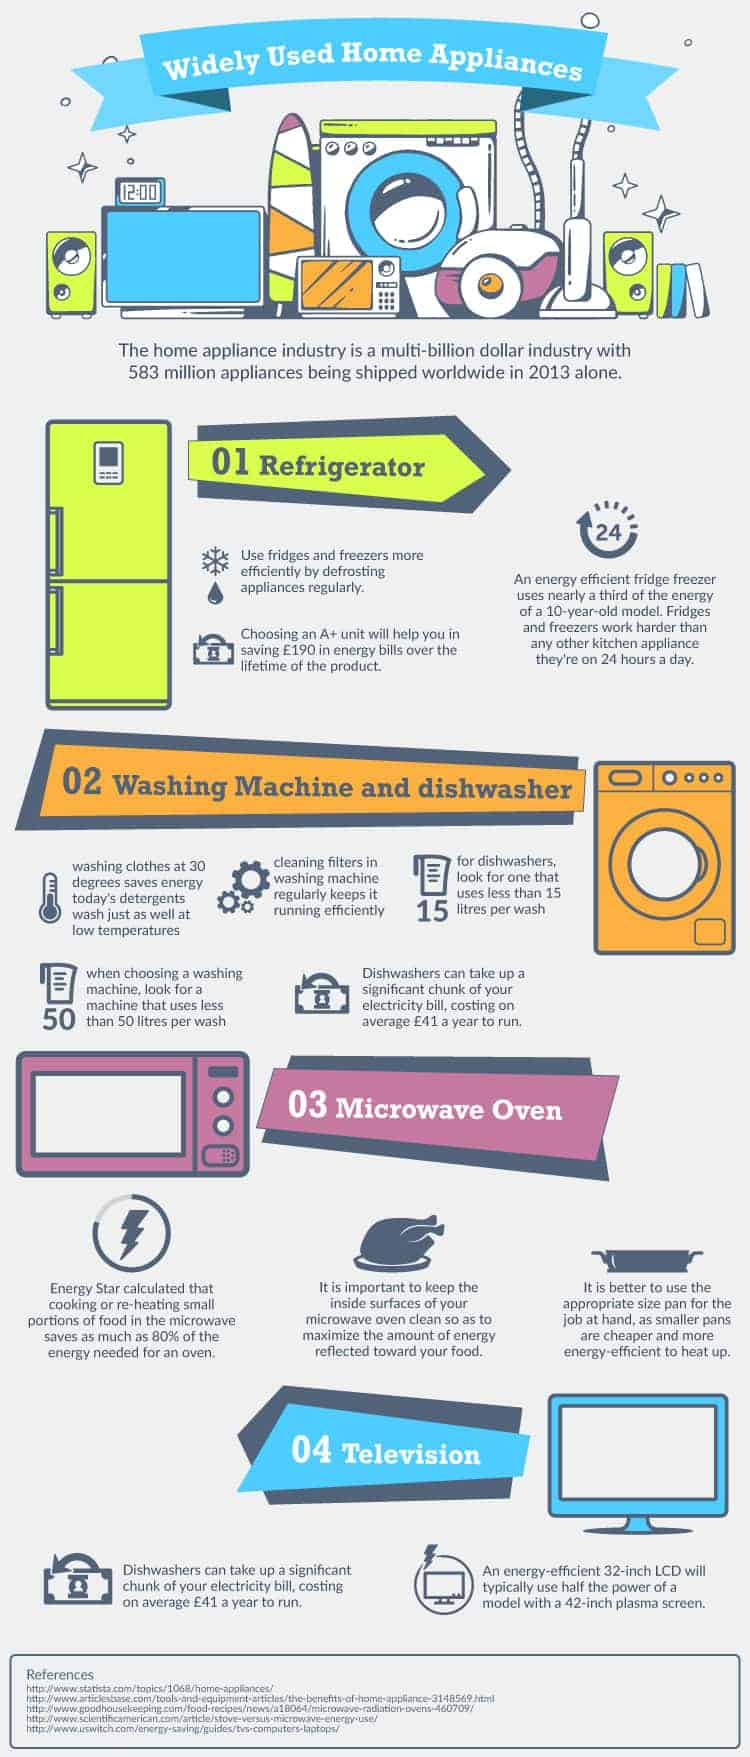 Panasonic-Home-Appliances-infographic